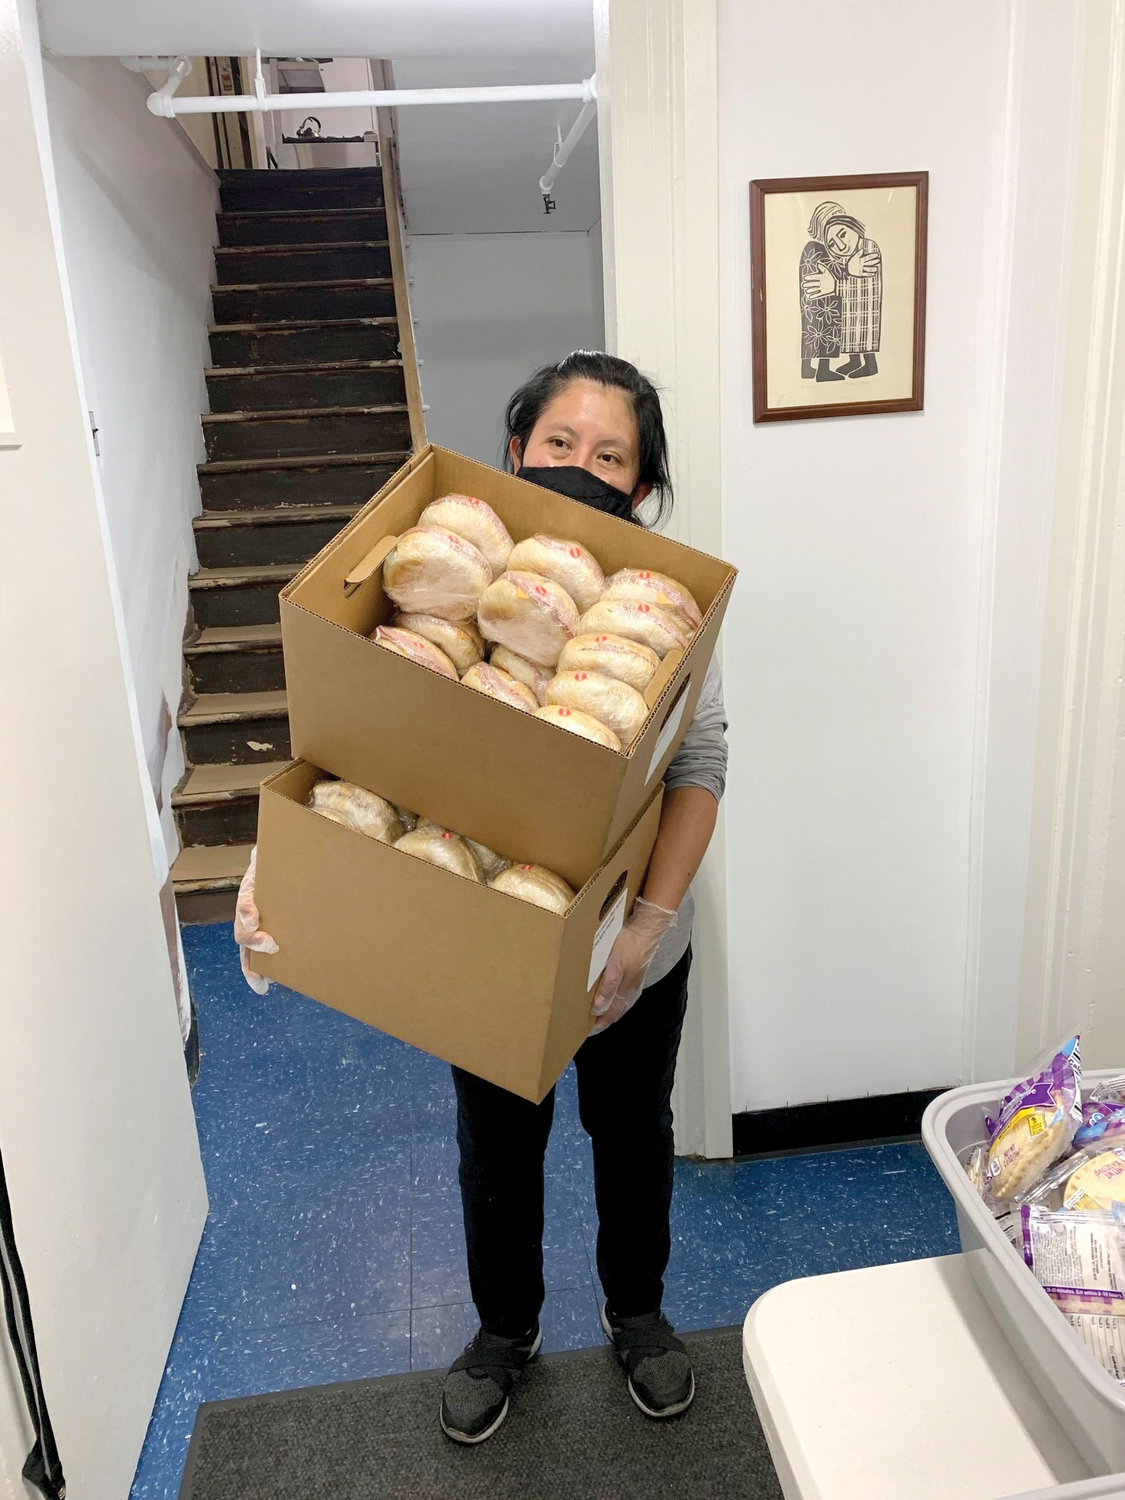 COMMUNITY DINNER—Luisa Mendez-Vega, a 20-year staff member of The Dwelling Place of New York, carries boxes of sandwiches for distribution at a Wednesday take-out dinner for former residents as well as members of the local community. The Manhattan women's shelter, which was forced to temporarily shut its doors in June, is planning to reopen in early January.